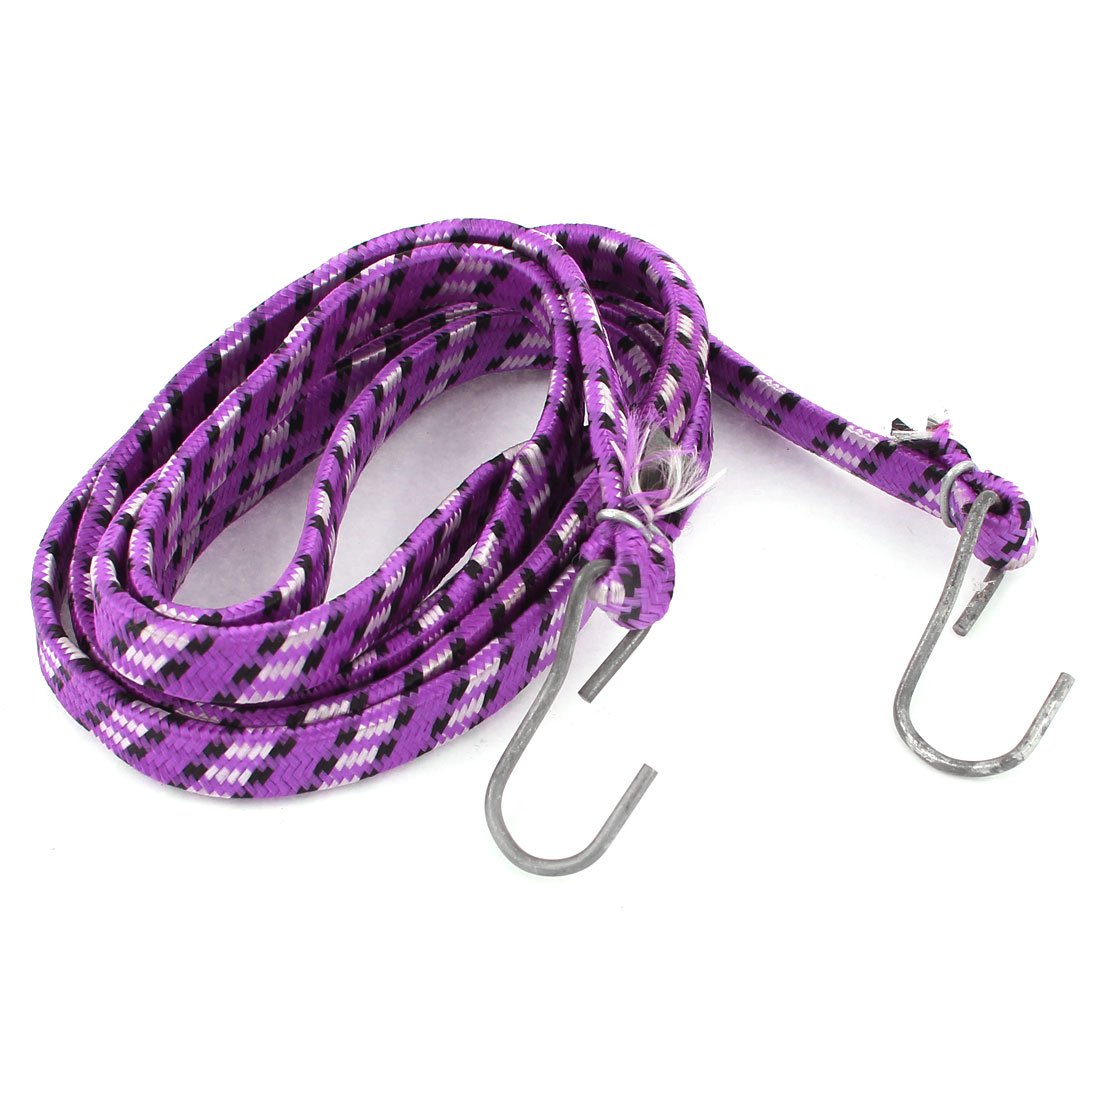 Bike Bicycle Metal Hook Flat Stretchy Luggage Cord Rope Purple 2M Long